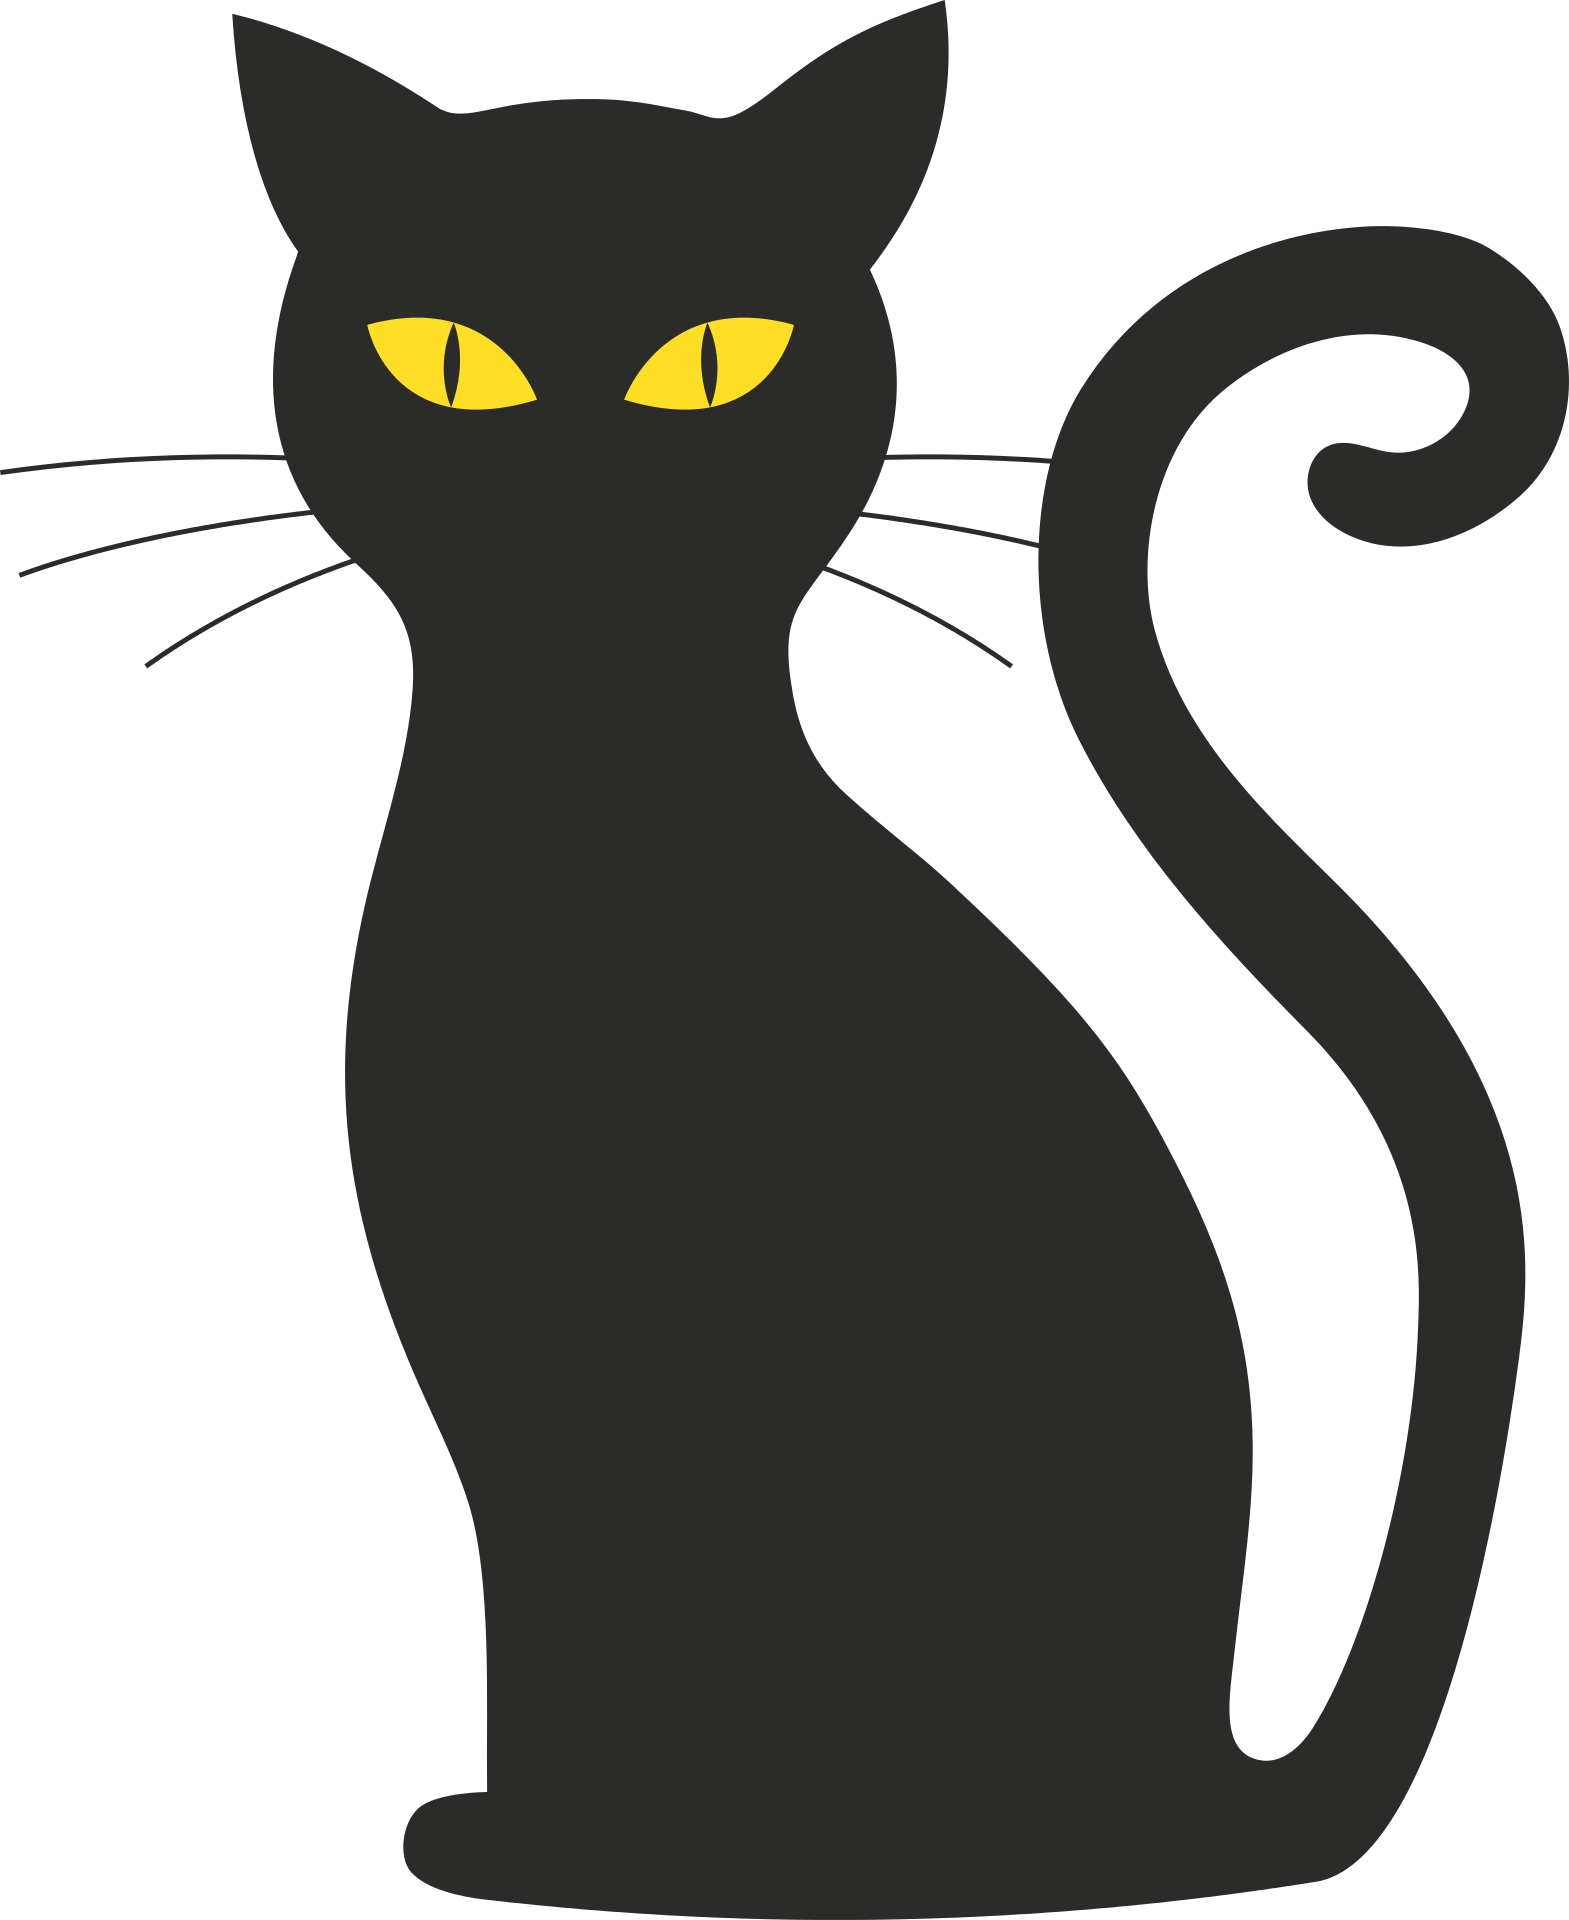 Singing cat clipart clipart black and white Szablon kota png czarny / Cat silhouette / public domain | Kot ... clipart black and white